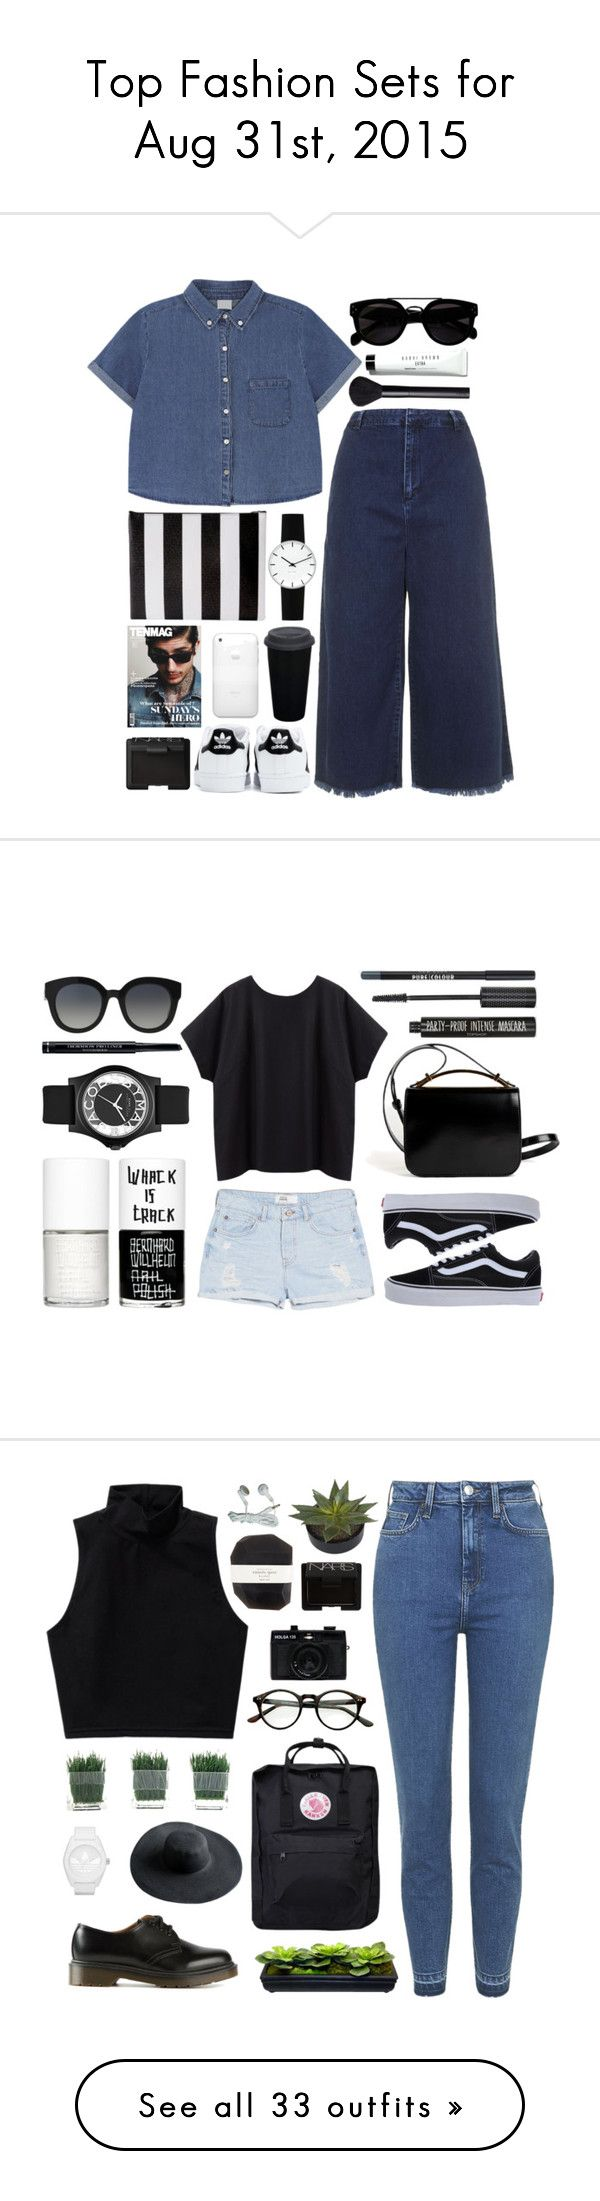 """""""Top Fashion Sets for Aug 31st, 2015"""" by polyvore ❤ liked on Polyvore featuring Topshop, adidas, DaBaGirl, Rosendahl, NARS Cosmetics, Bobbi Brown Cosmetics, La Garçonne Moderne, Givenchy, Dolce&Gabbana and Vans"""